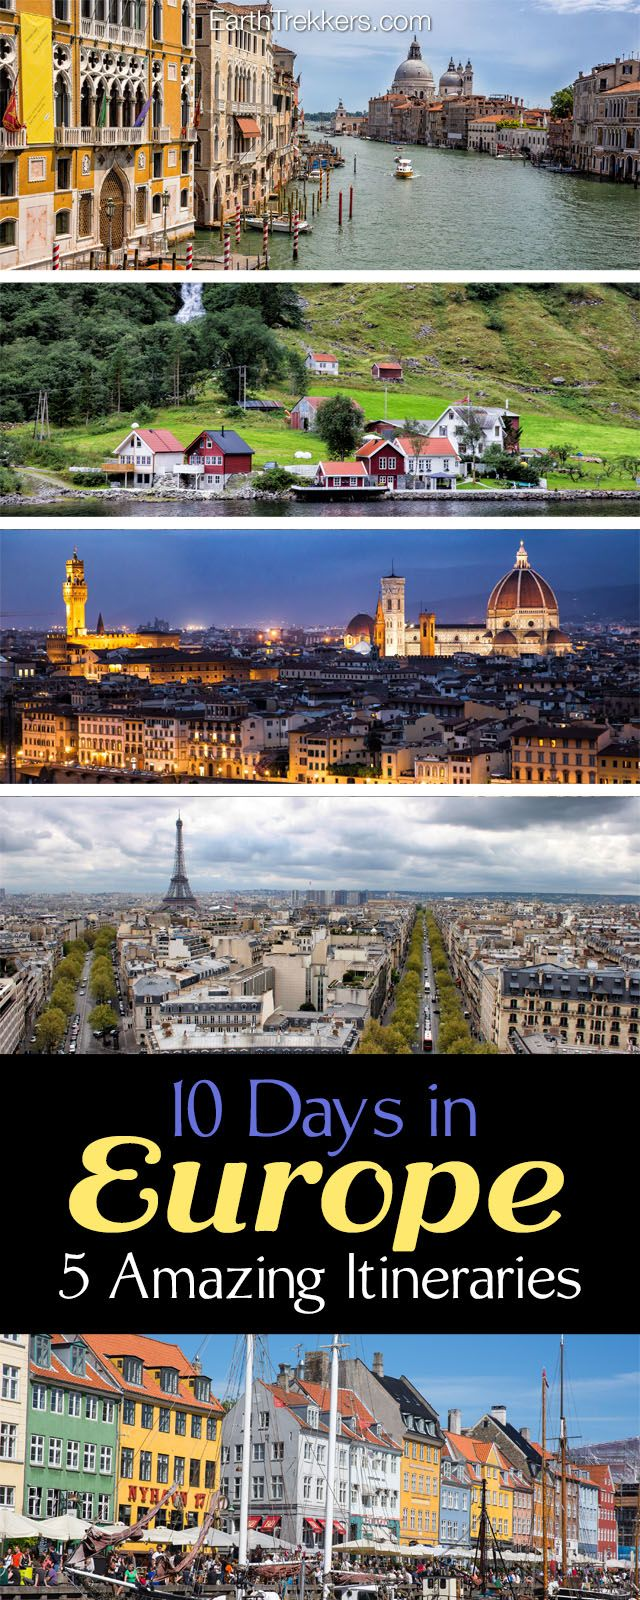 Europe Itineraries: Sample Itineraries for 10 days in Europe, including Paris, Rome, Florence, Venice, Barcelona, London, Amsterdam.